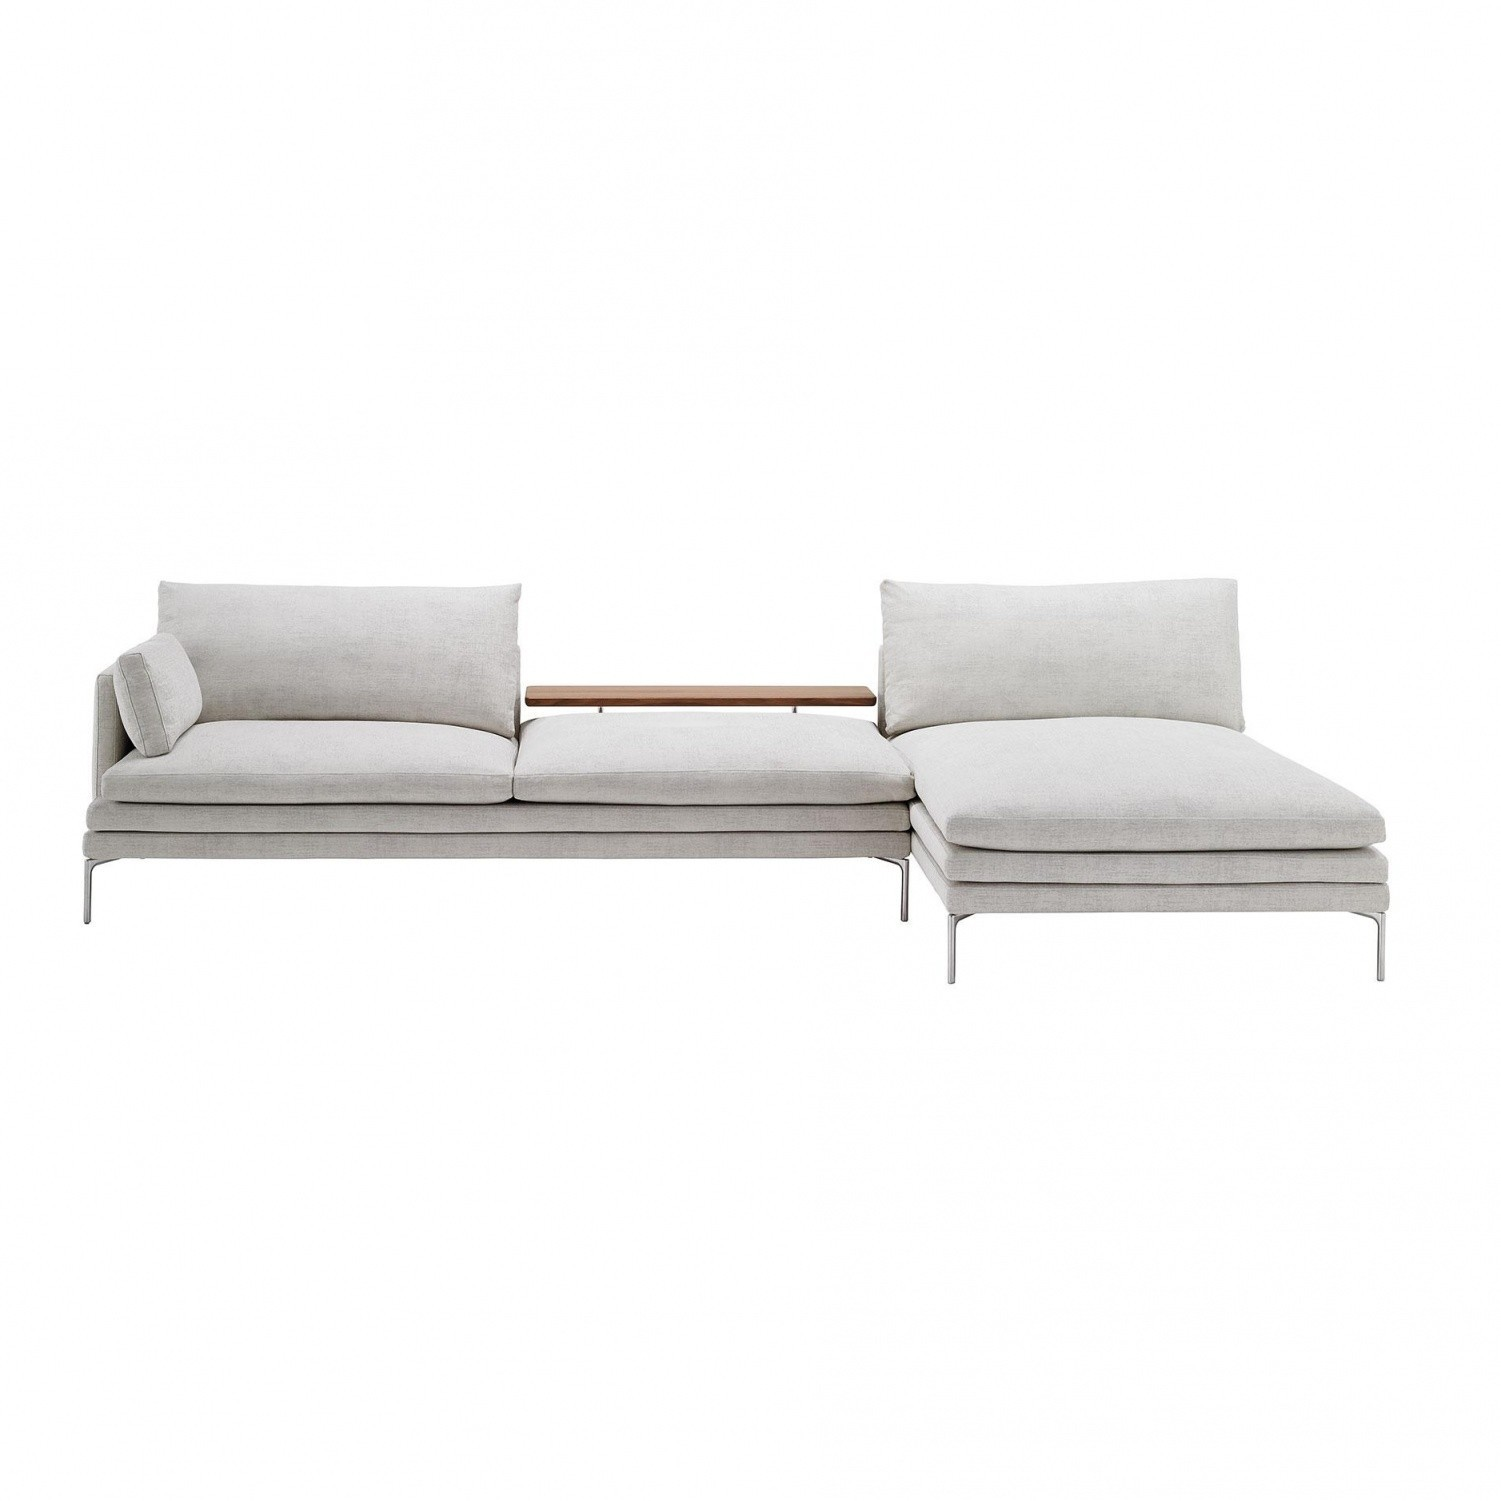 Zanotta William - Canapé avec chaise-longue | AmbienteDirect on chair sofa, recliner sofa, ottoman sofa, art sofa, divan sofa, lounge sofa, bench sofa, bookcase sofa, pillow sofa, settee sofa, mattress sofa, glider sofa, fabric sofa, futon sofa, beds sofa, cushions sofa, storage sofa, couch sofa, table sofa, bedroom sofa,